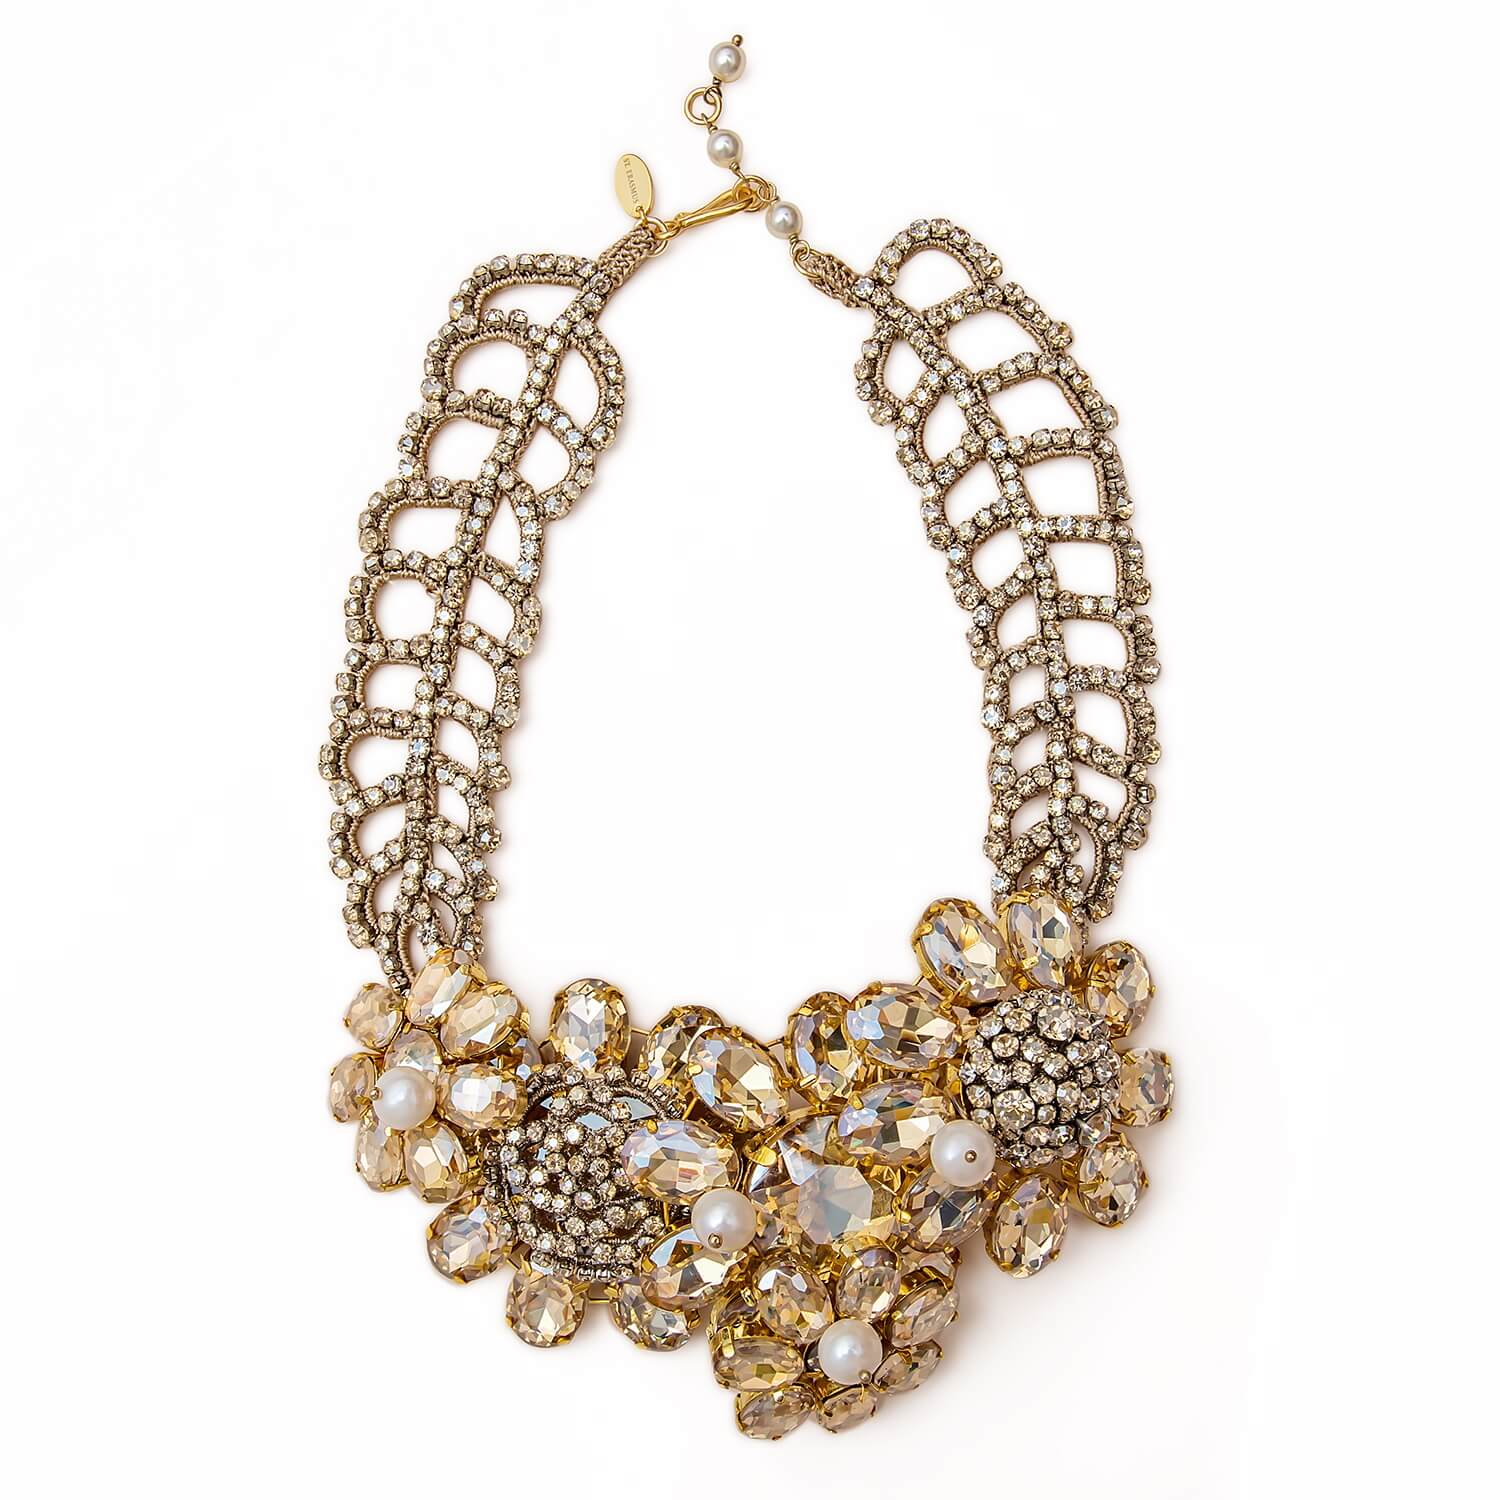 Rosanna Champagne Necklace